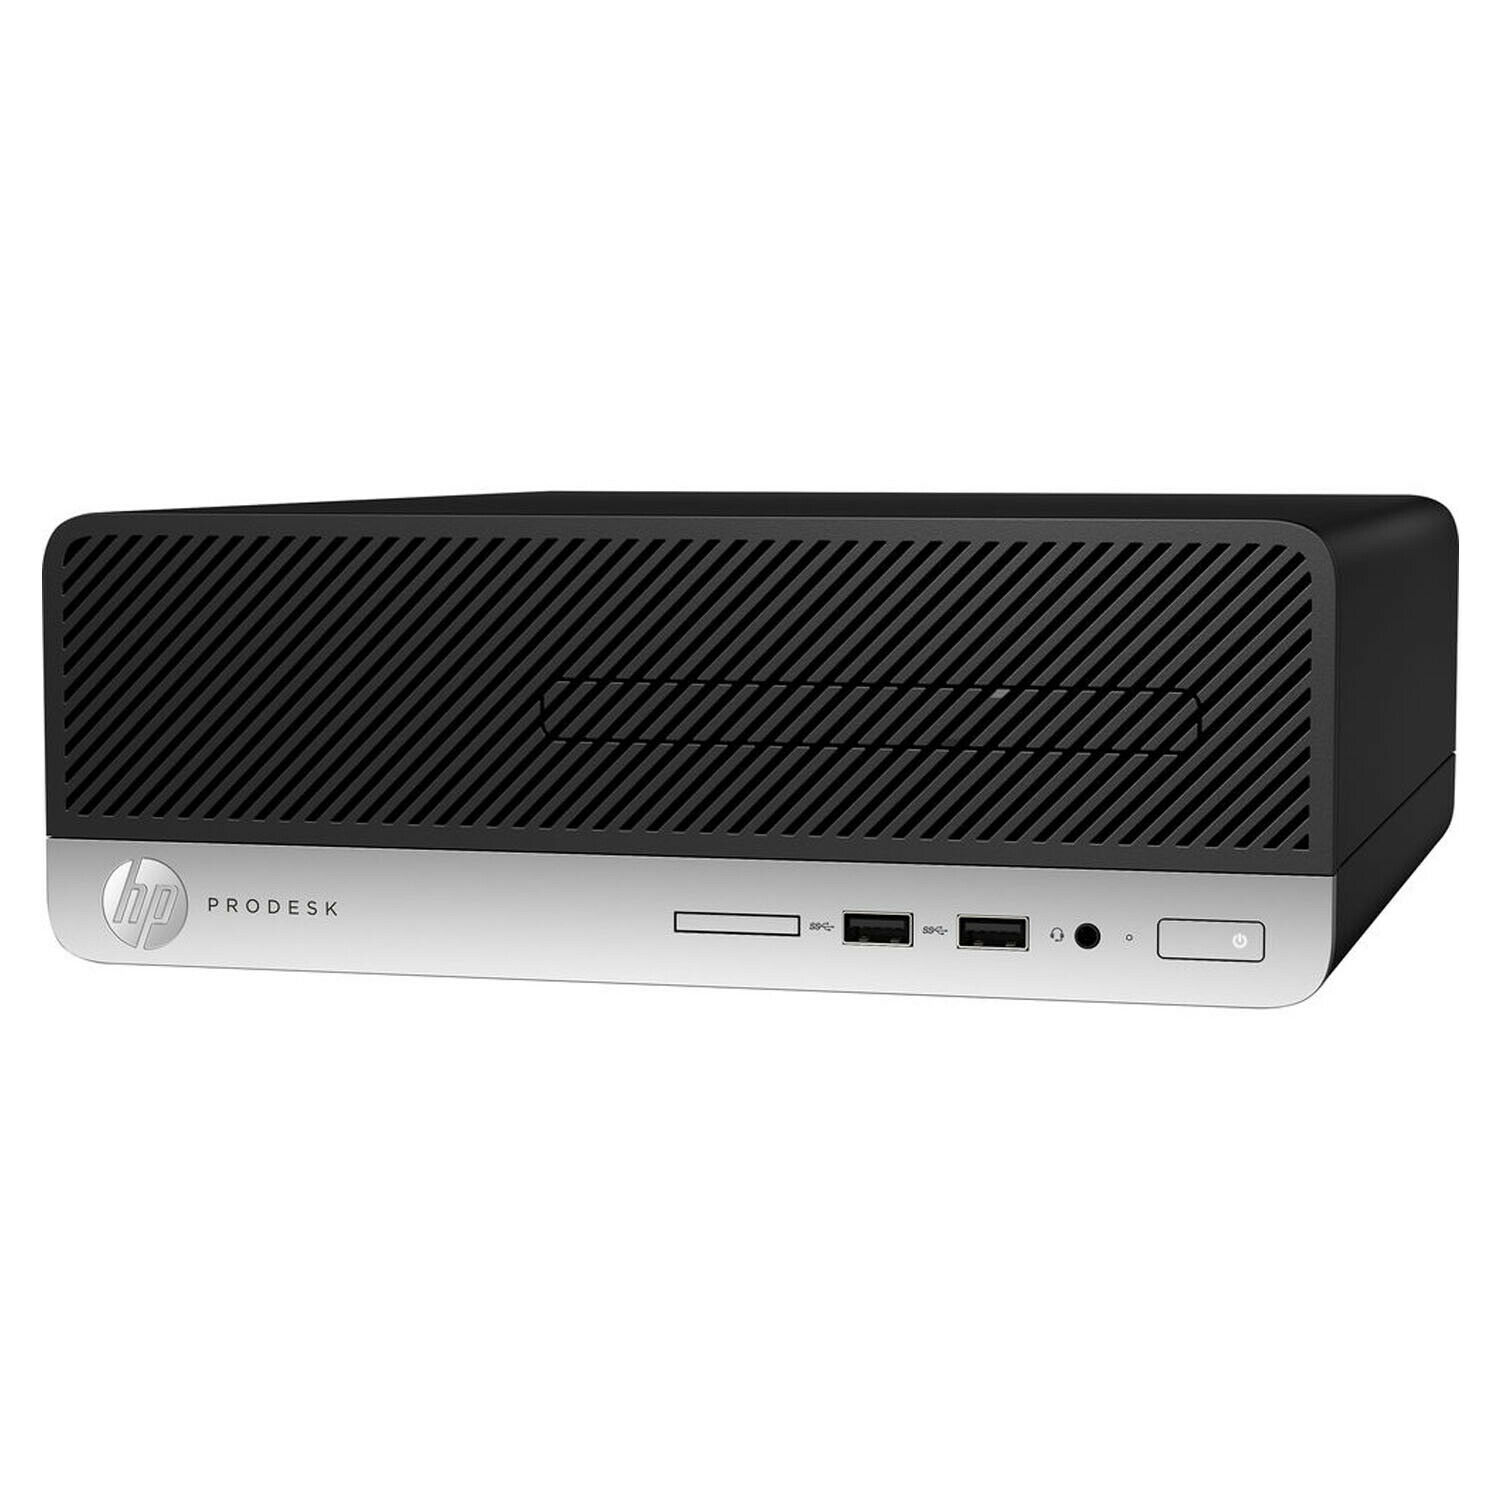 Computer Games - HP ProDesk 400 G4 Computer Desktop PC Core i7-7700 8GB DDR4 RAM 256GB SSD Wi-Fi